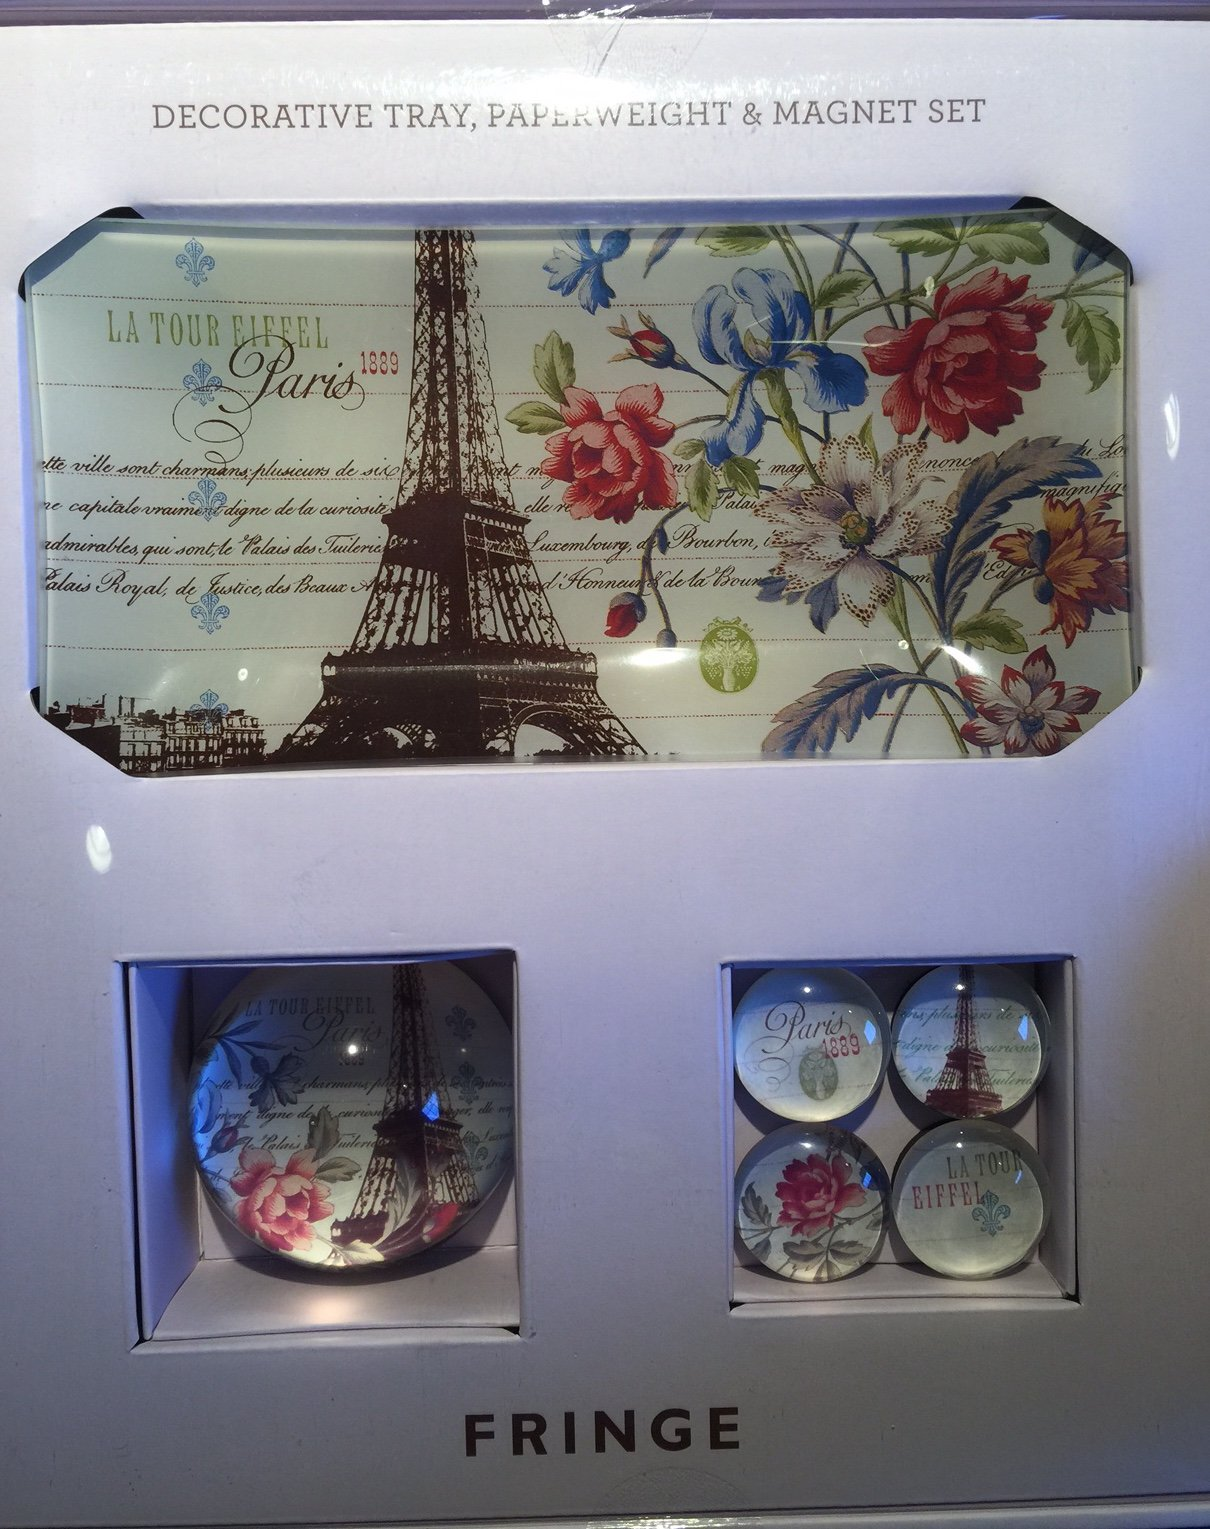 Fringe Decorative Glass Tray Paperweight and Magnet Set PARIS EIFFEL TOWER by Fringe